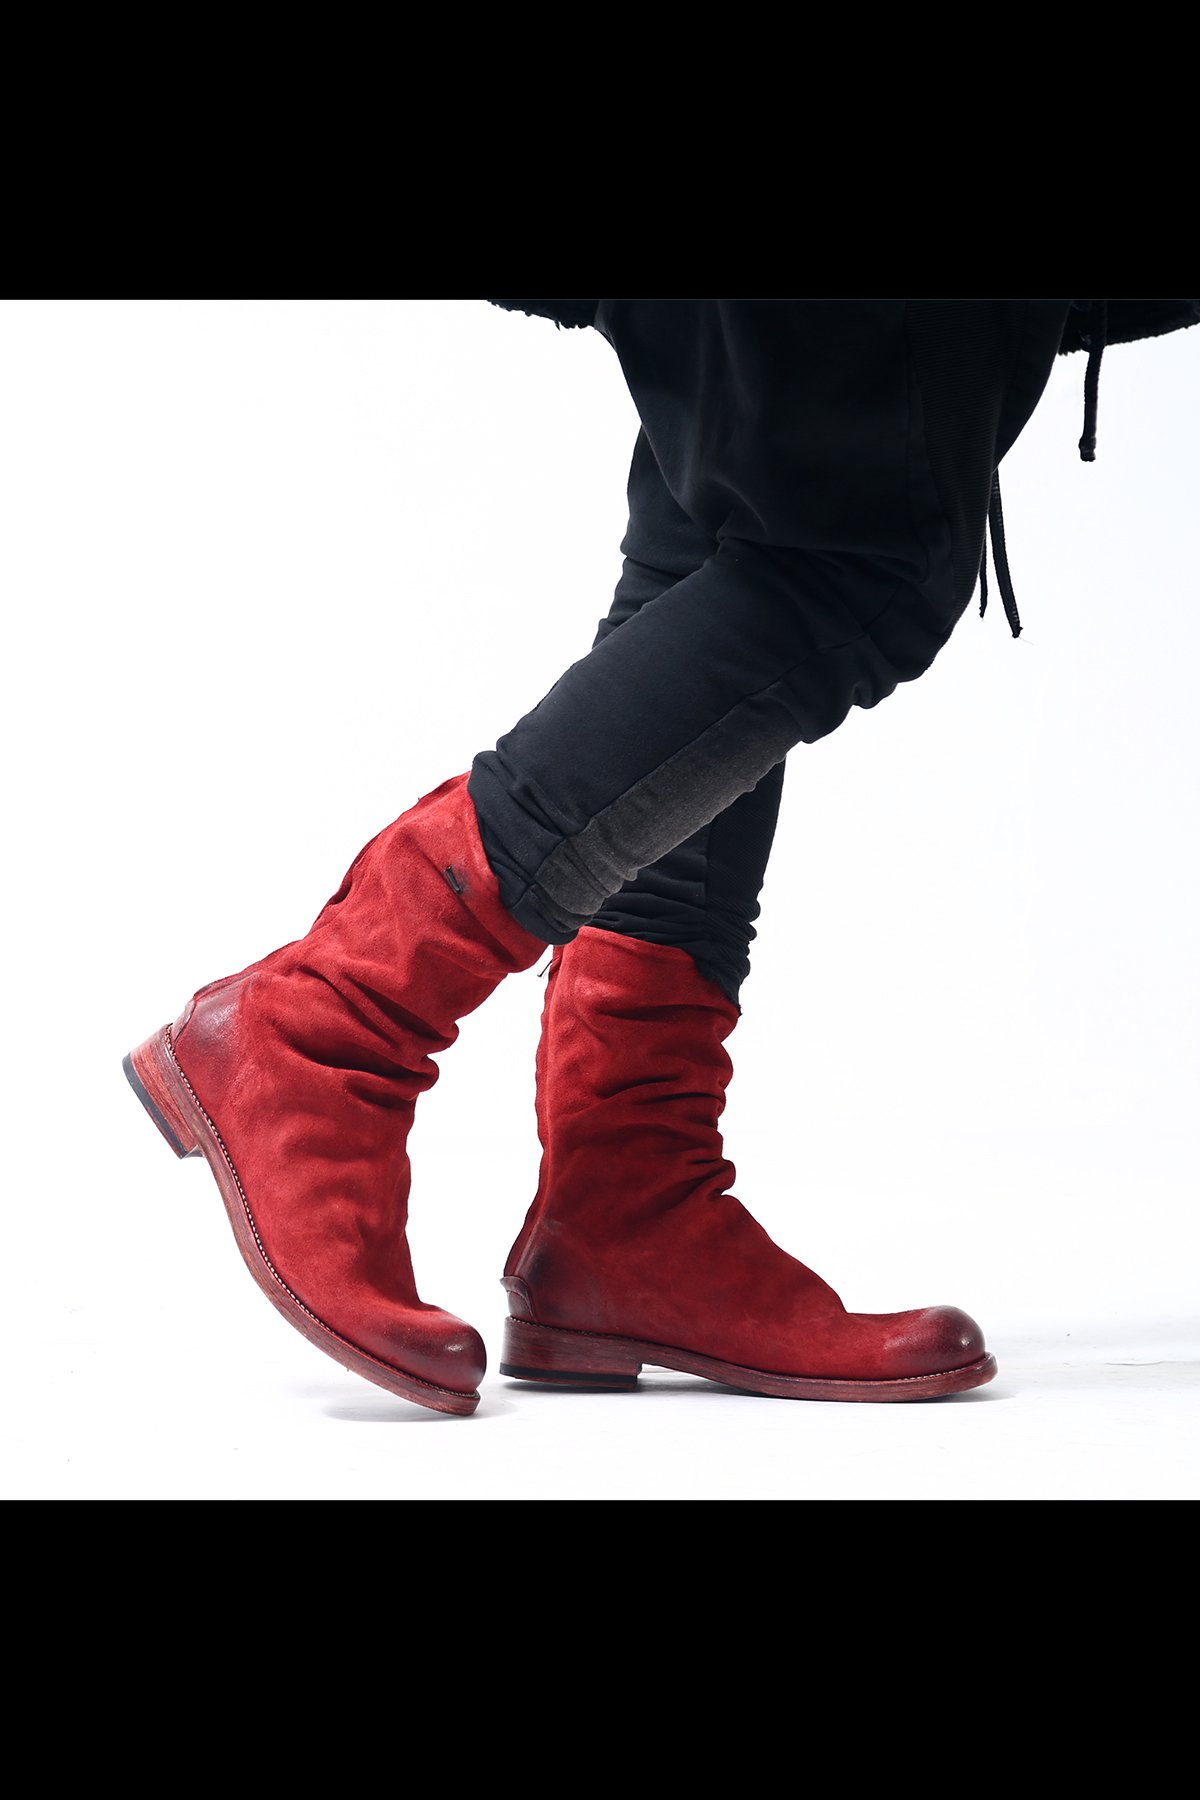 BACK ZIP BOOTS TLC2169_WAXED SUEDE OXBLOOD